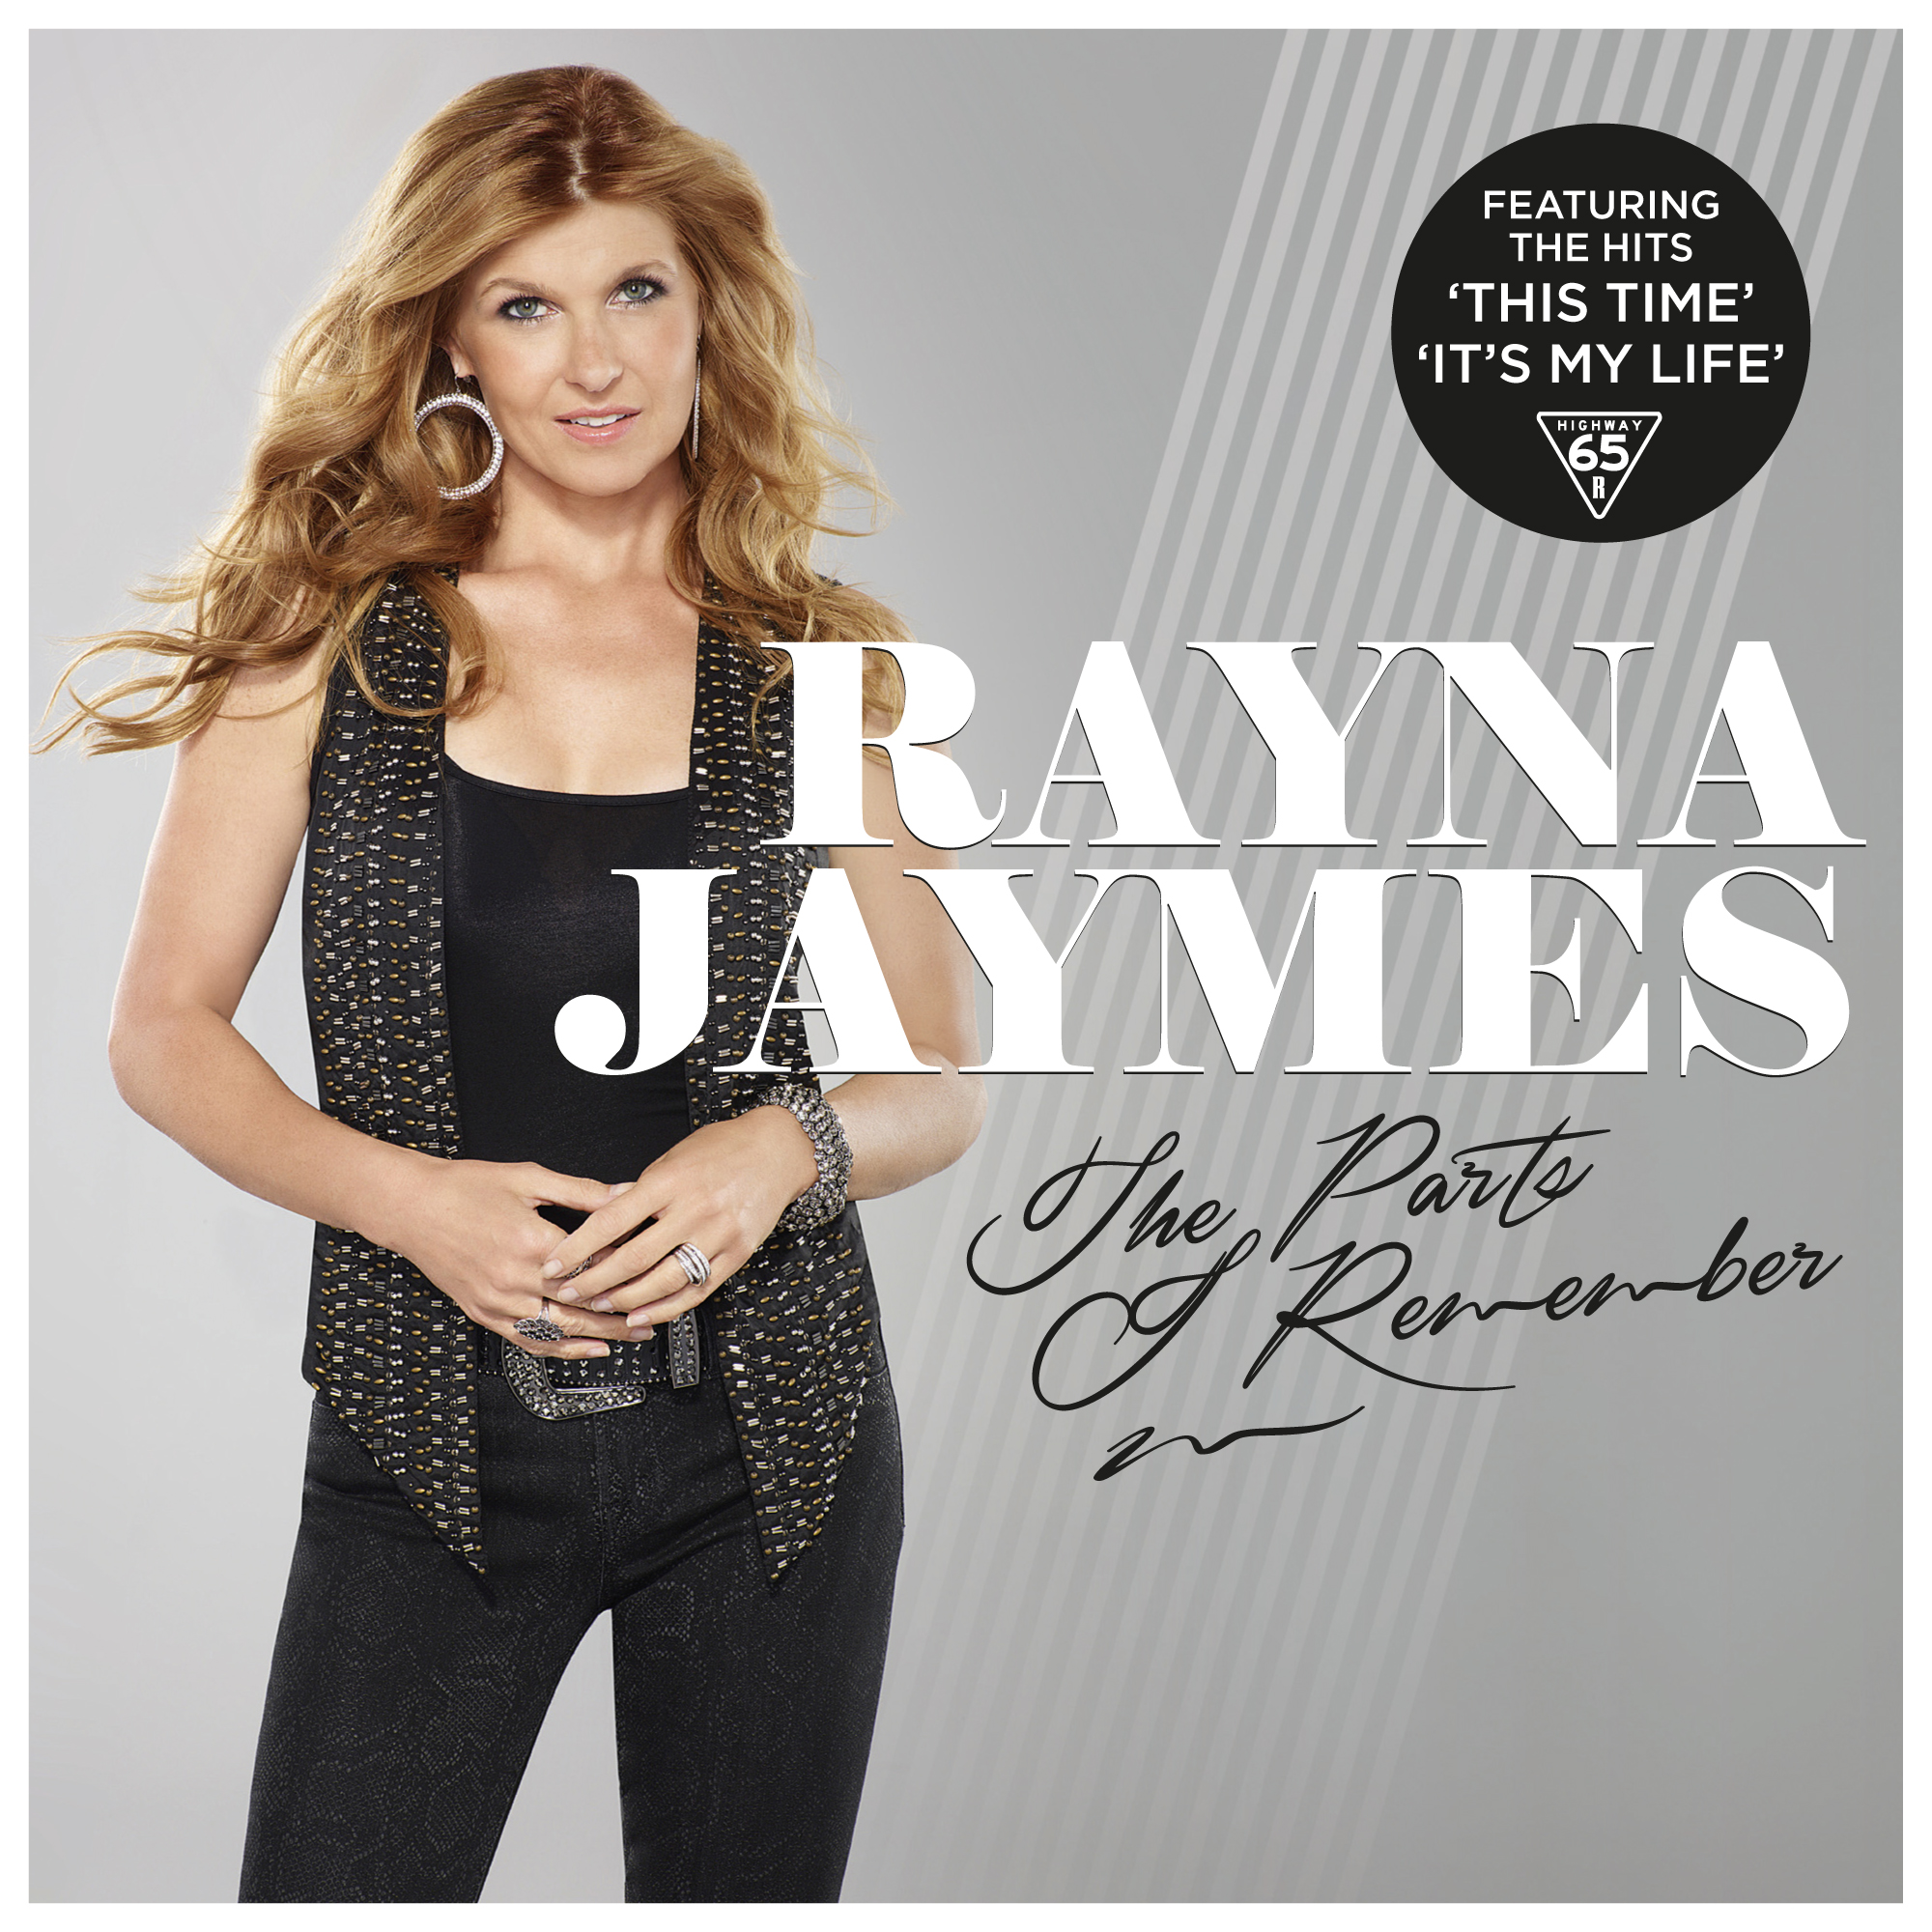 Rayna Jaymes - The Things I Remember